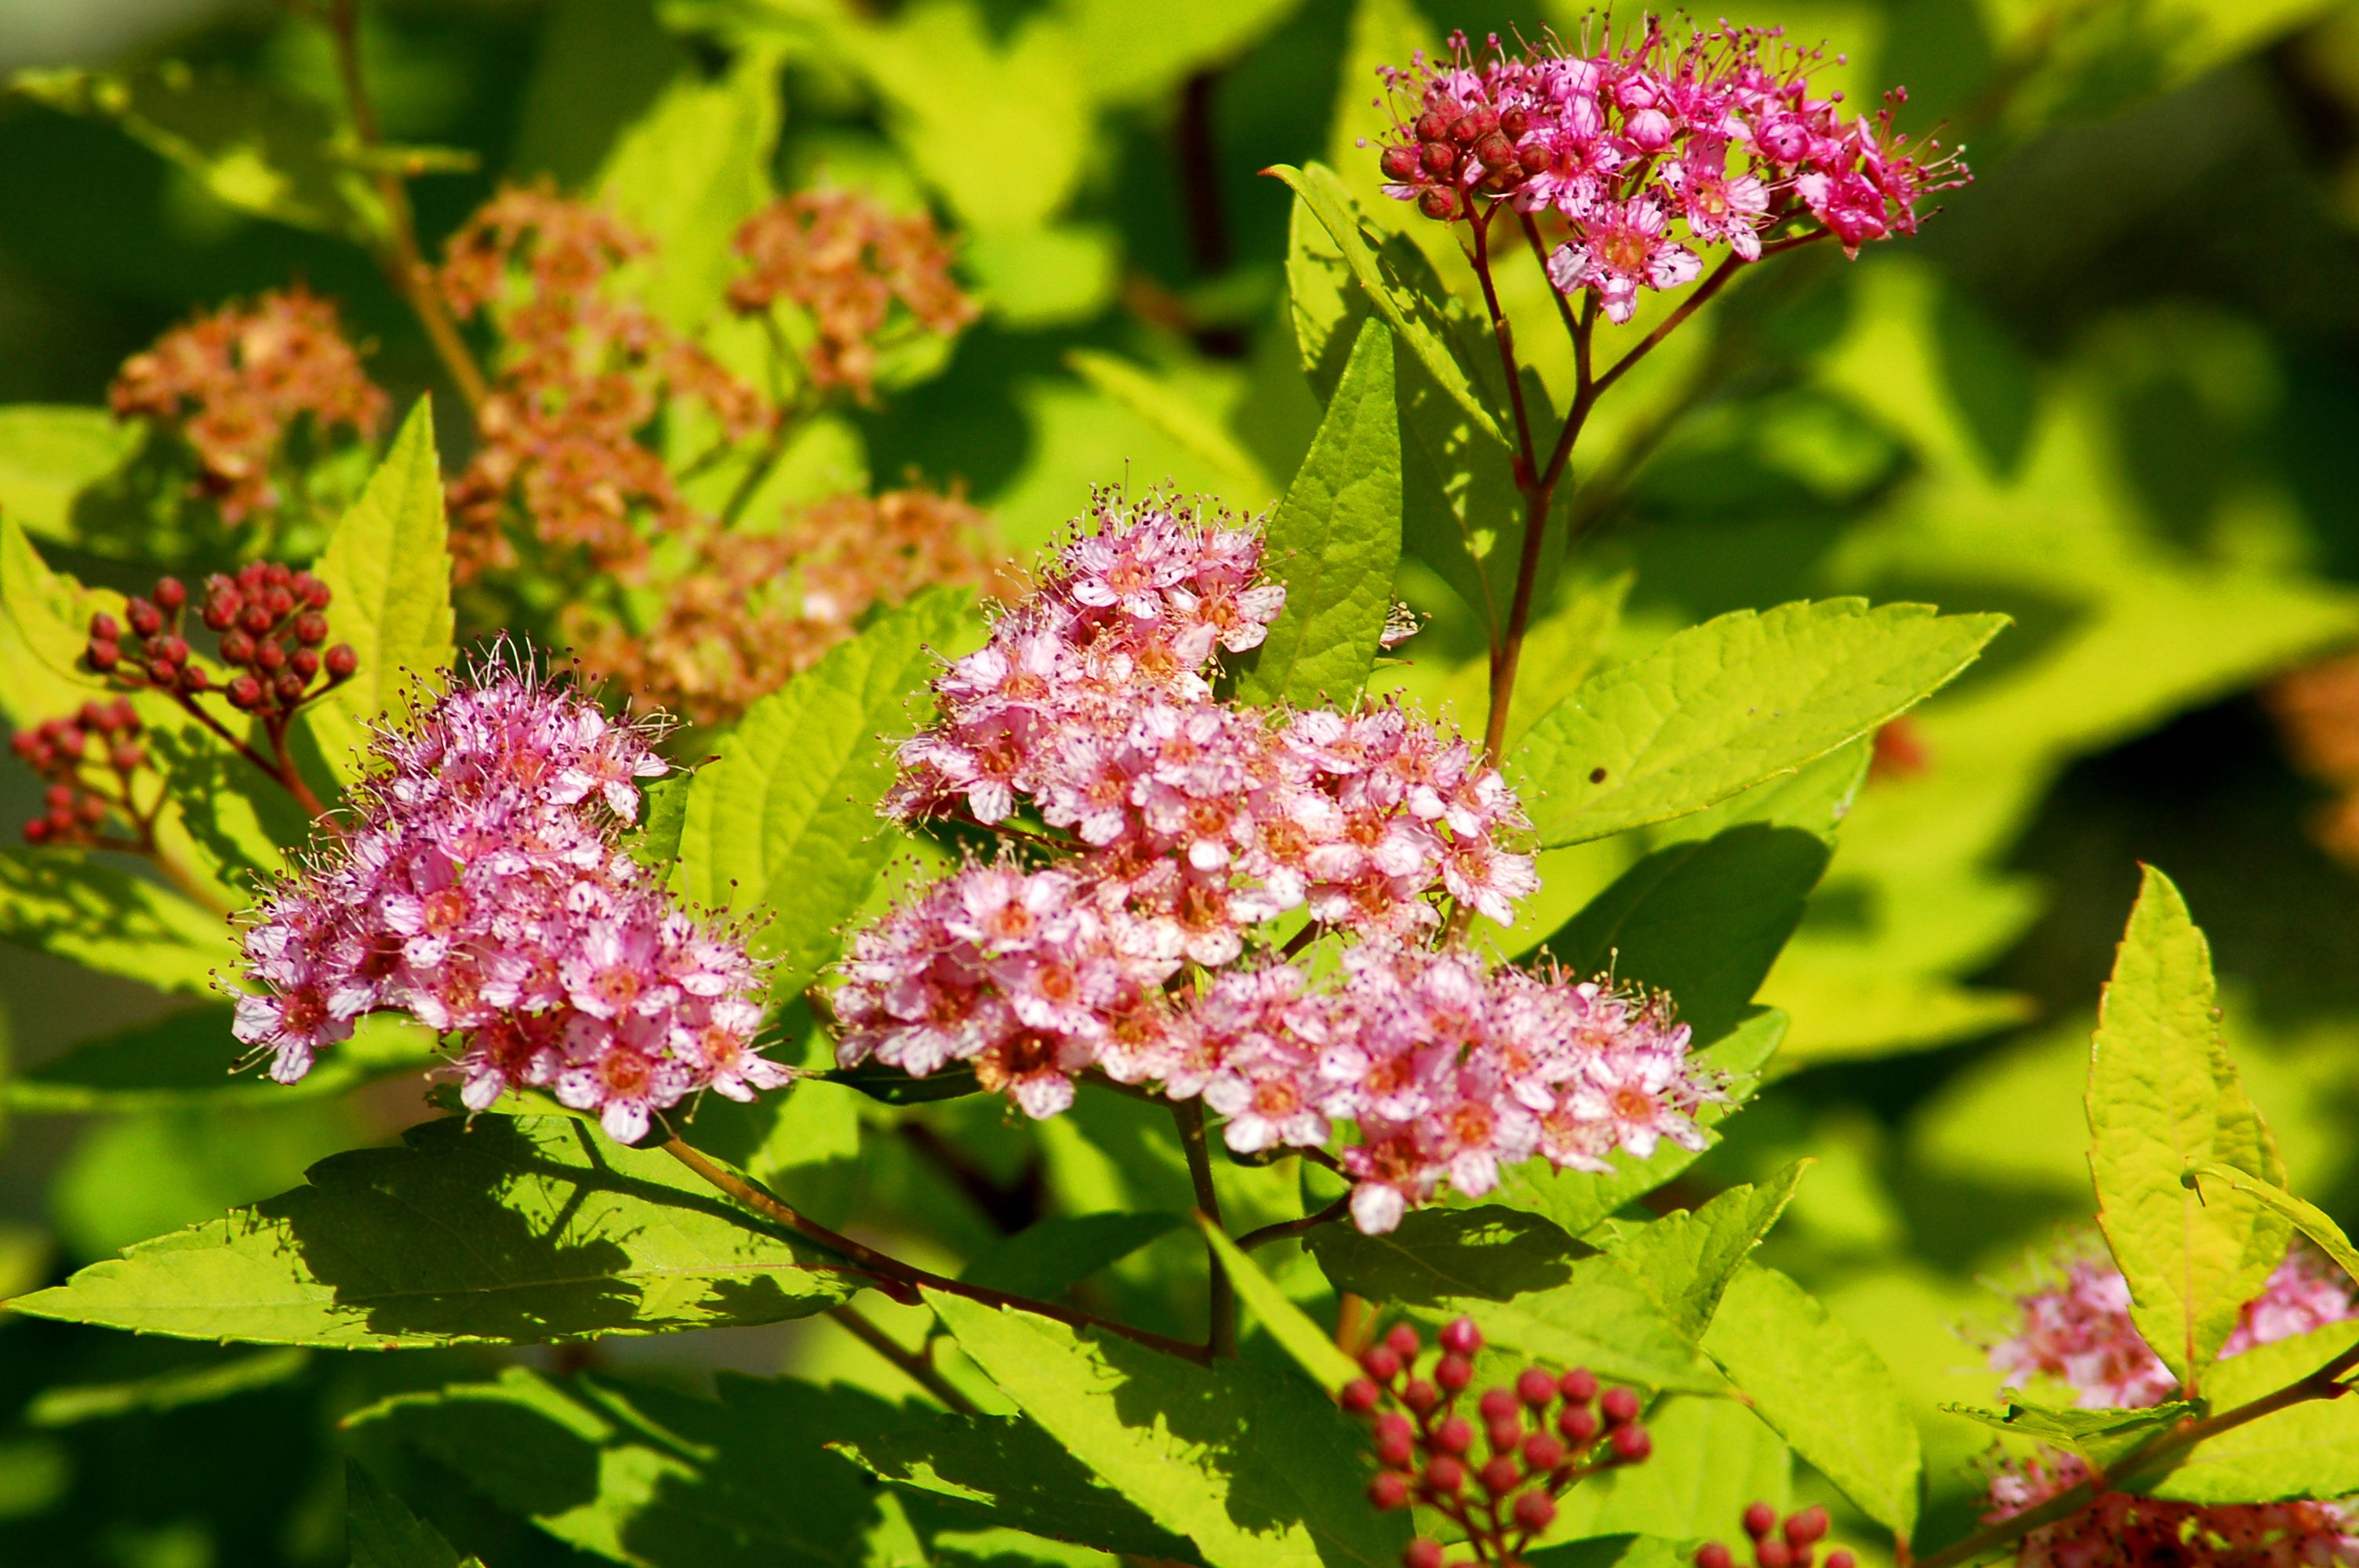 Goldmound spirea flowers (picture) are a nice addition to the leaves.